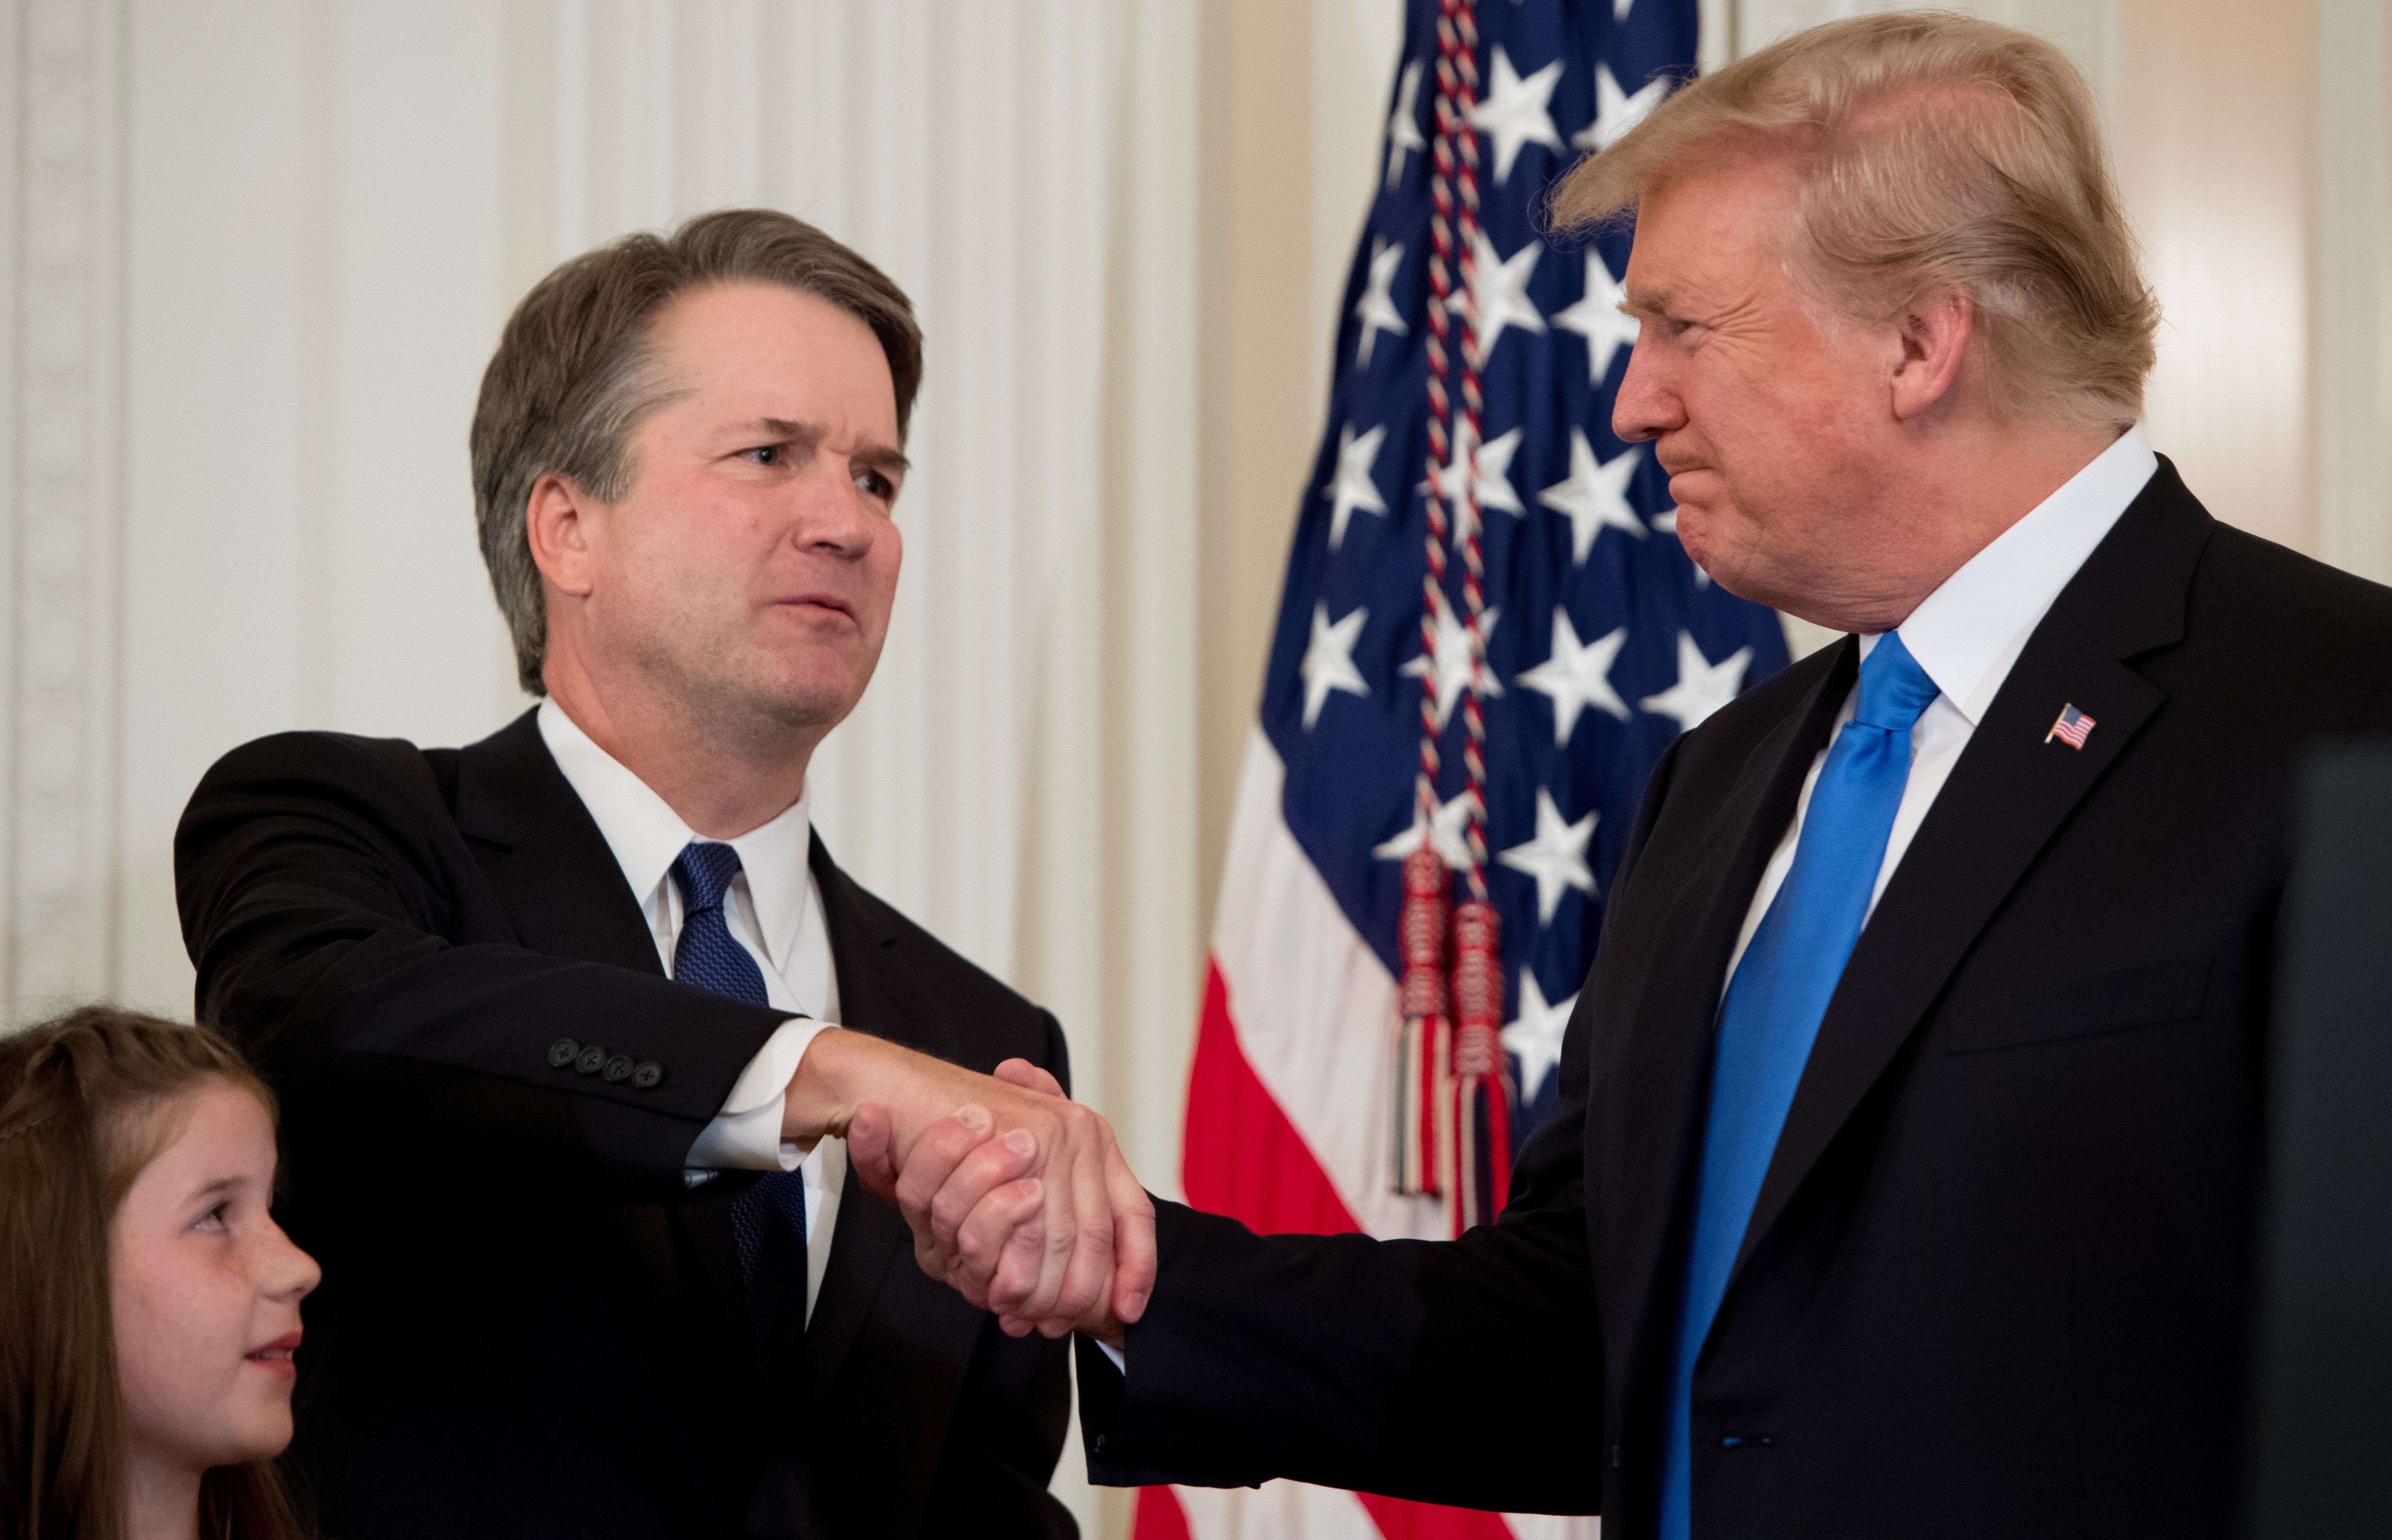 Supreme Court nominee Brett Kavanaugh and President Donald Trump share a handshake before the sexual assault allegation came